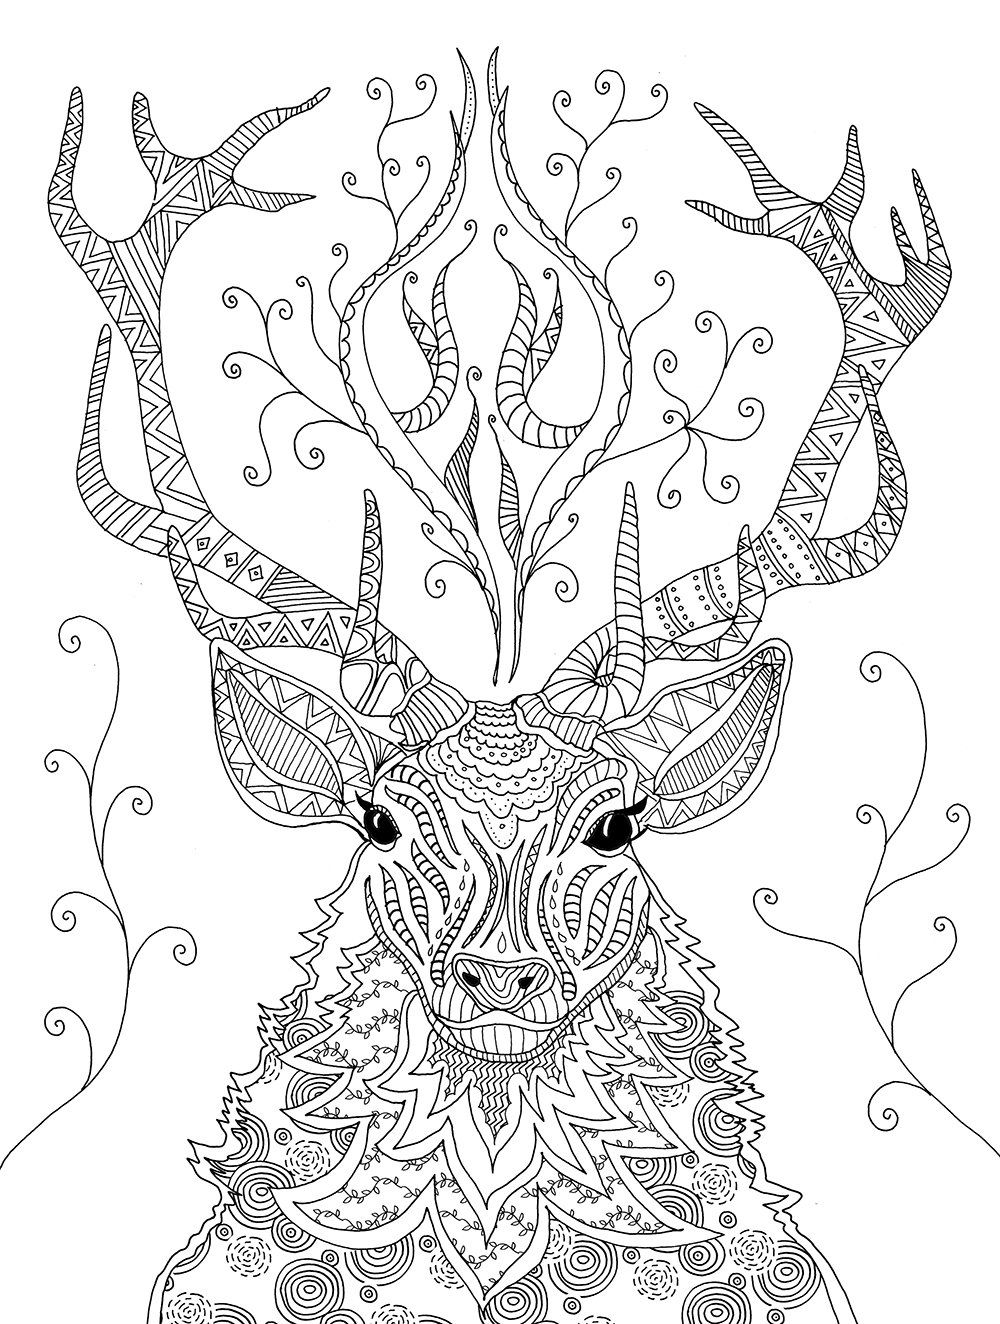 Mandala coloring pages amazon - Explore Animal Coloring Pages And More